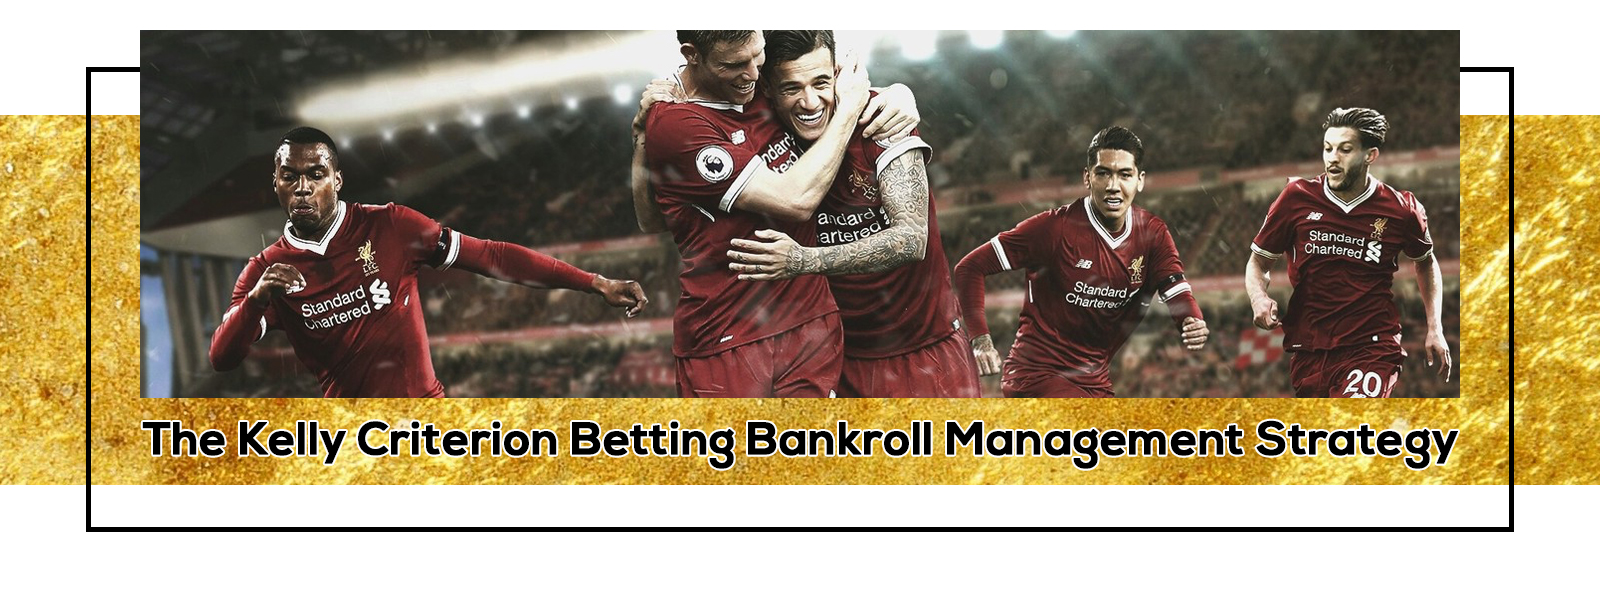 The Kelly Criterion Betting Bankroll Management Strategy